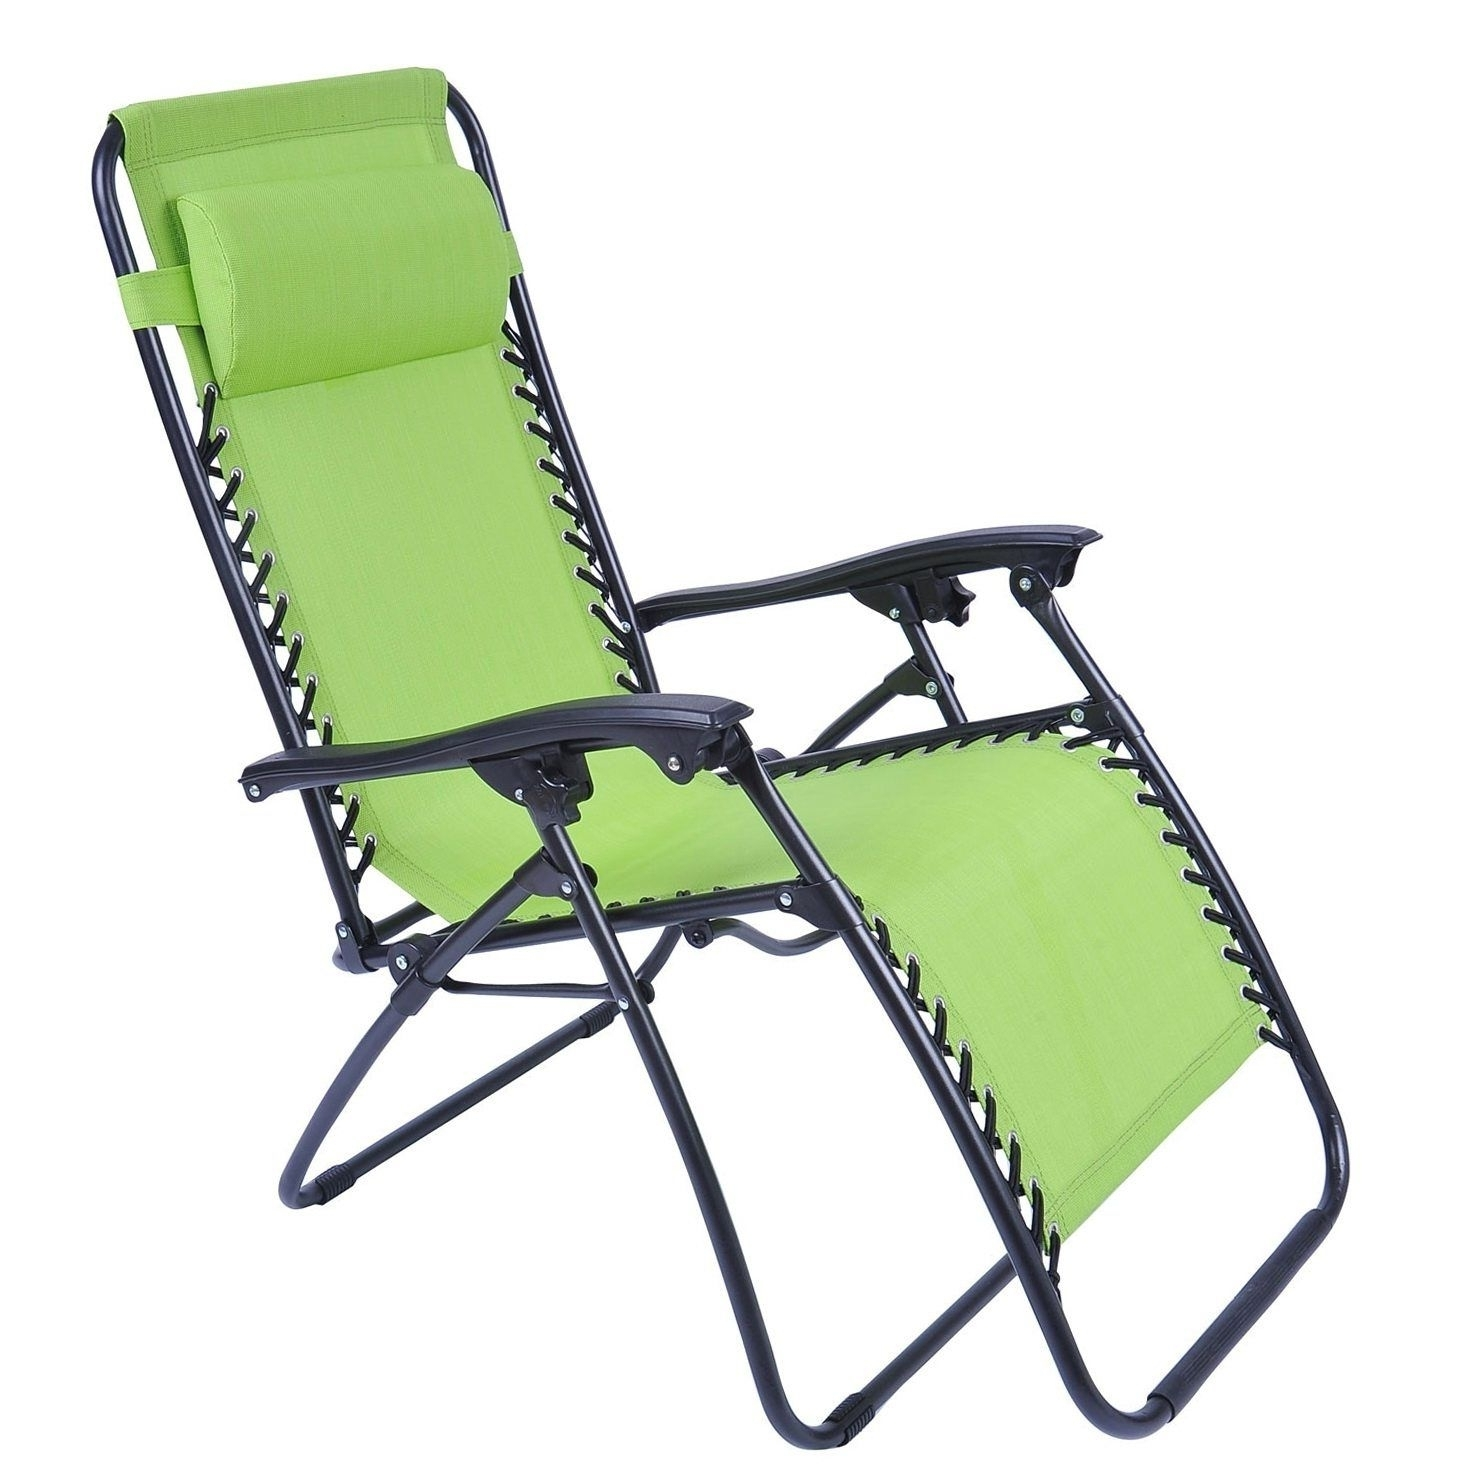 Most Recent Chaise Lounge Reclining Chairs For Outdoor With Lounge Chair Outdoor Folding Folding Chaise Lounge Chair Patio (View 13 of 15)